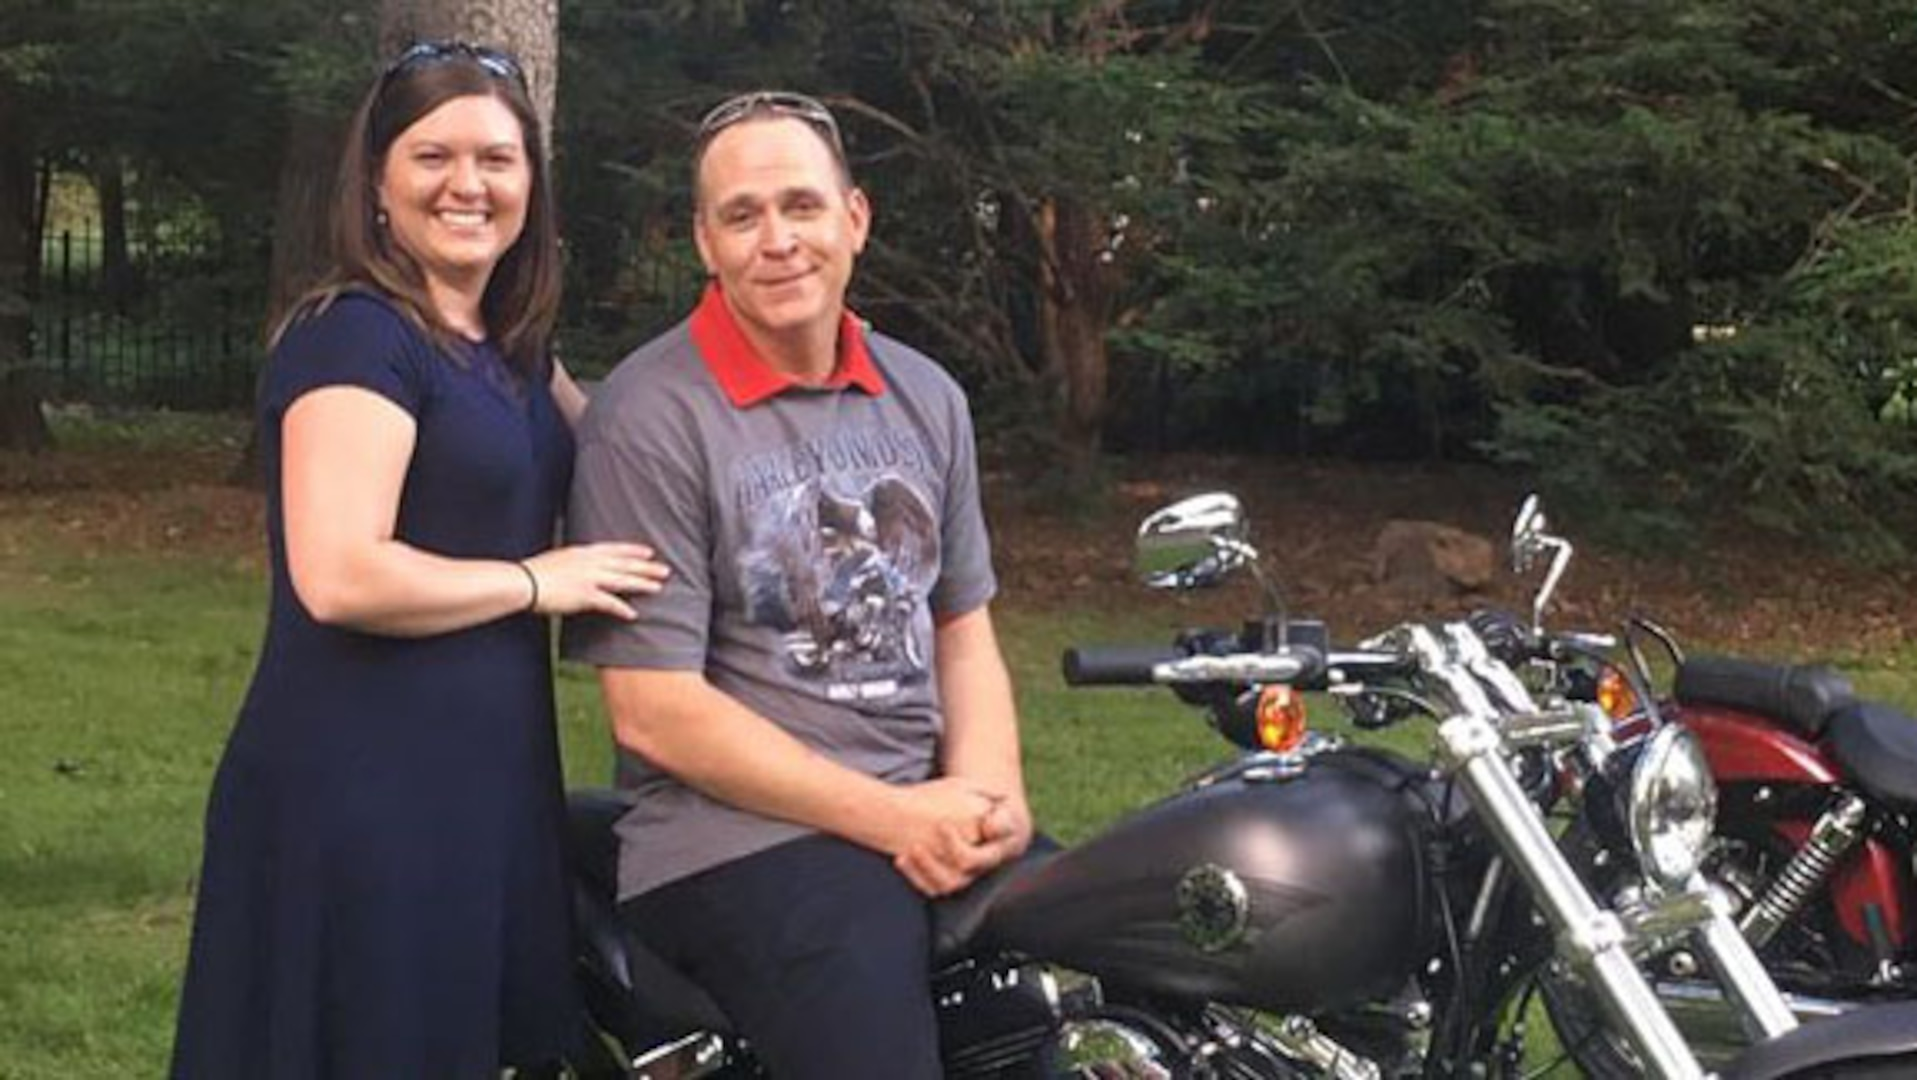 John Bryant, a quality assurance specialist with Defense Contract Management Agency International in Ottawa, Canada, is presented with a Harley Davidson Breakout from his wife, July 4, 2016. The motorcycle was a gift in celebration of his successful battle against cancer. (Photo courtesy of Patrick Norton)